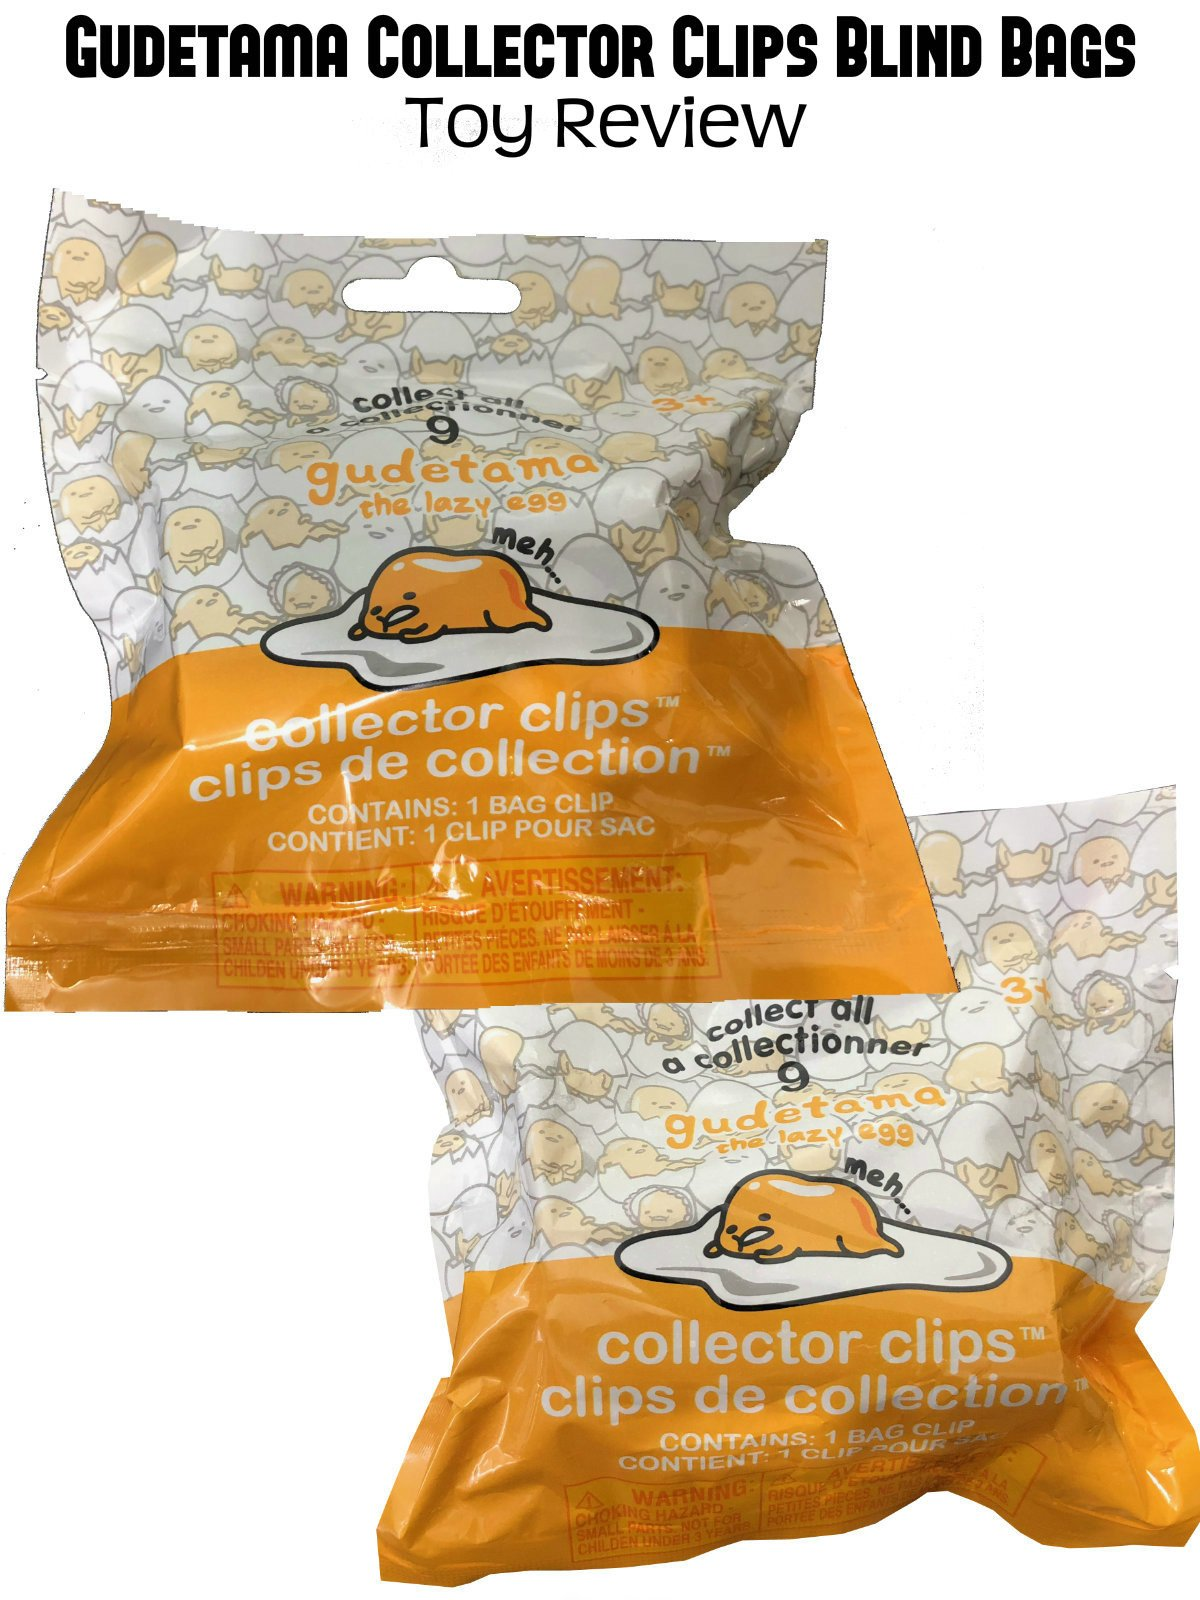 Review: Gudetama Collector Clips Blind Bags Toy Review